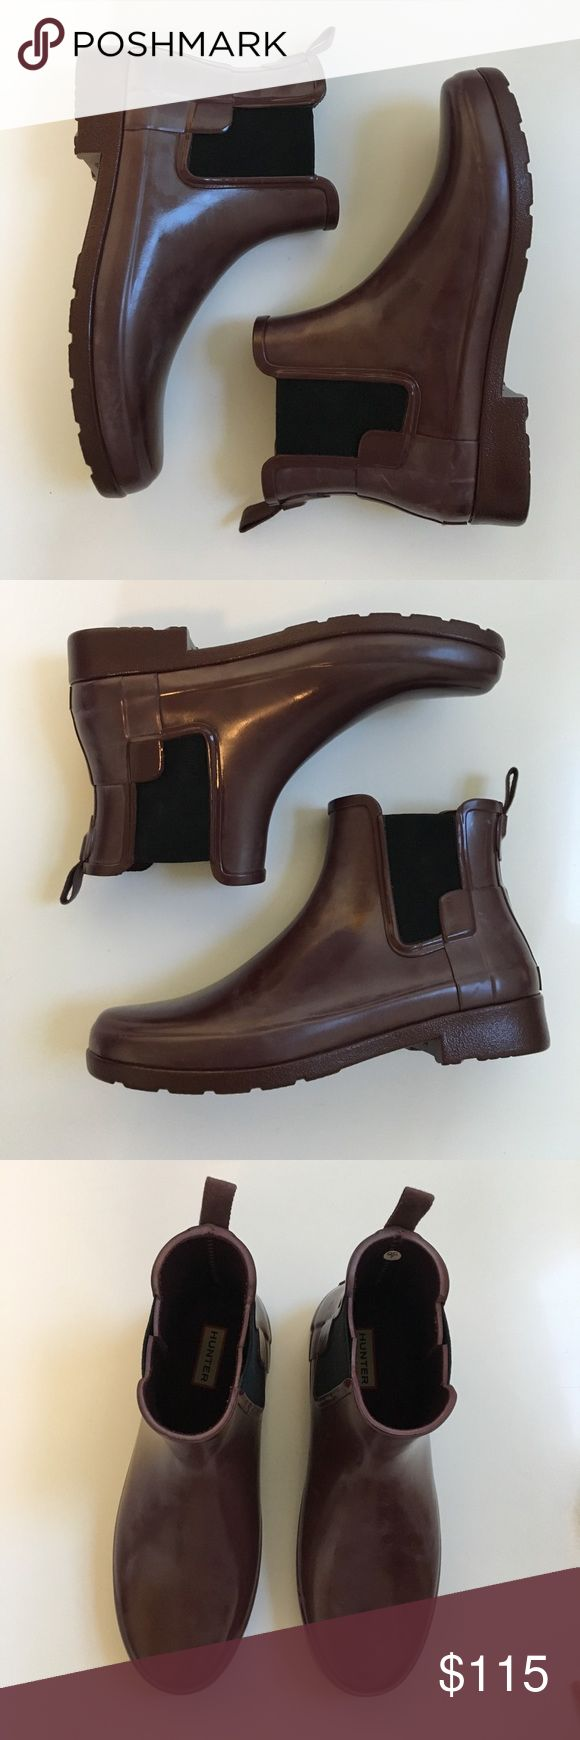 "NWOT { Hunter } ankle boots Hunter ankle boots, side stretch for easy on/off, new without tags or box has mild ""clouding"" which is how these boots can be through storage just. Reds a olive oil rub. In excellent condition. Hunter Boots Shoes Ankle Boots & Booties"